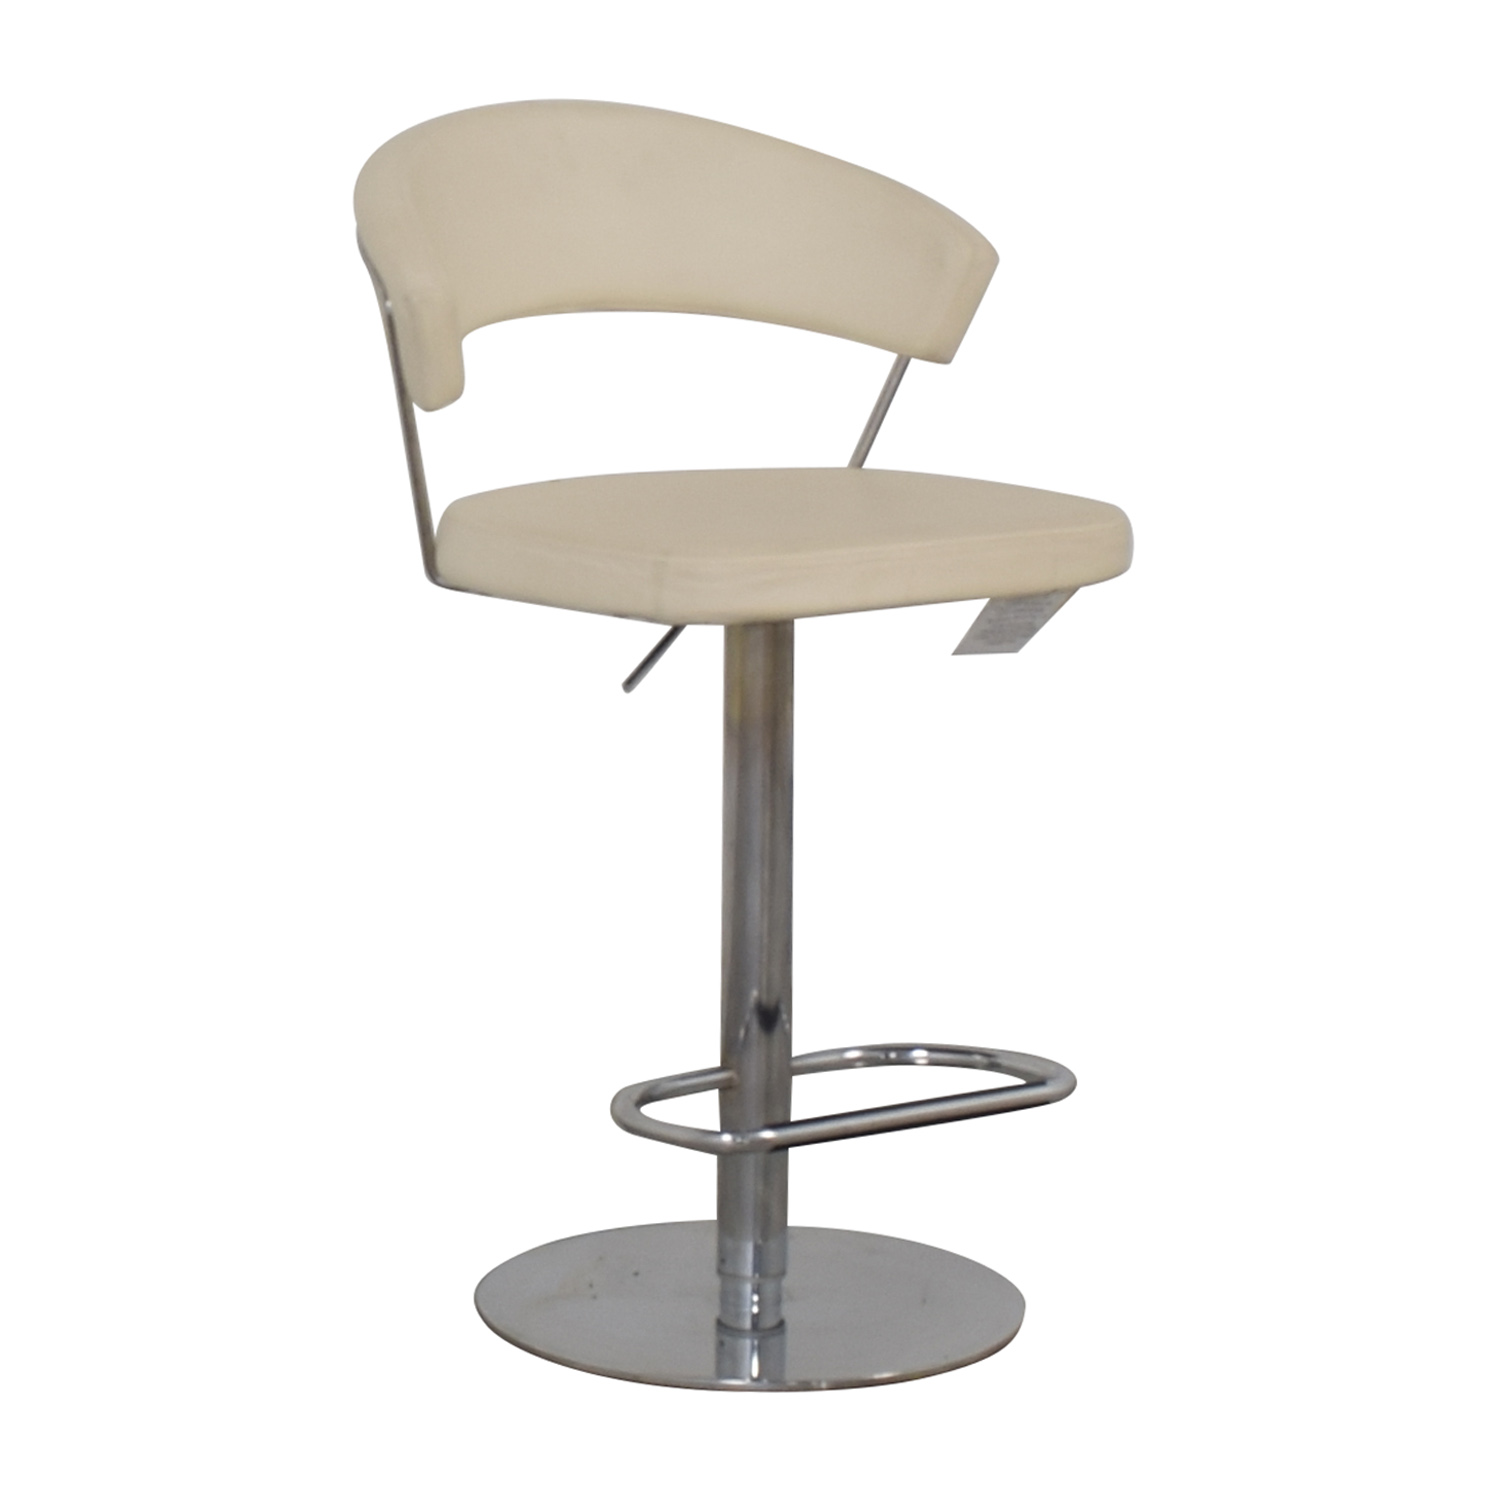 Calligaris Calligaris New York Adjustable Stool